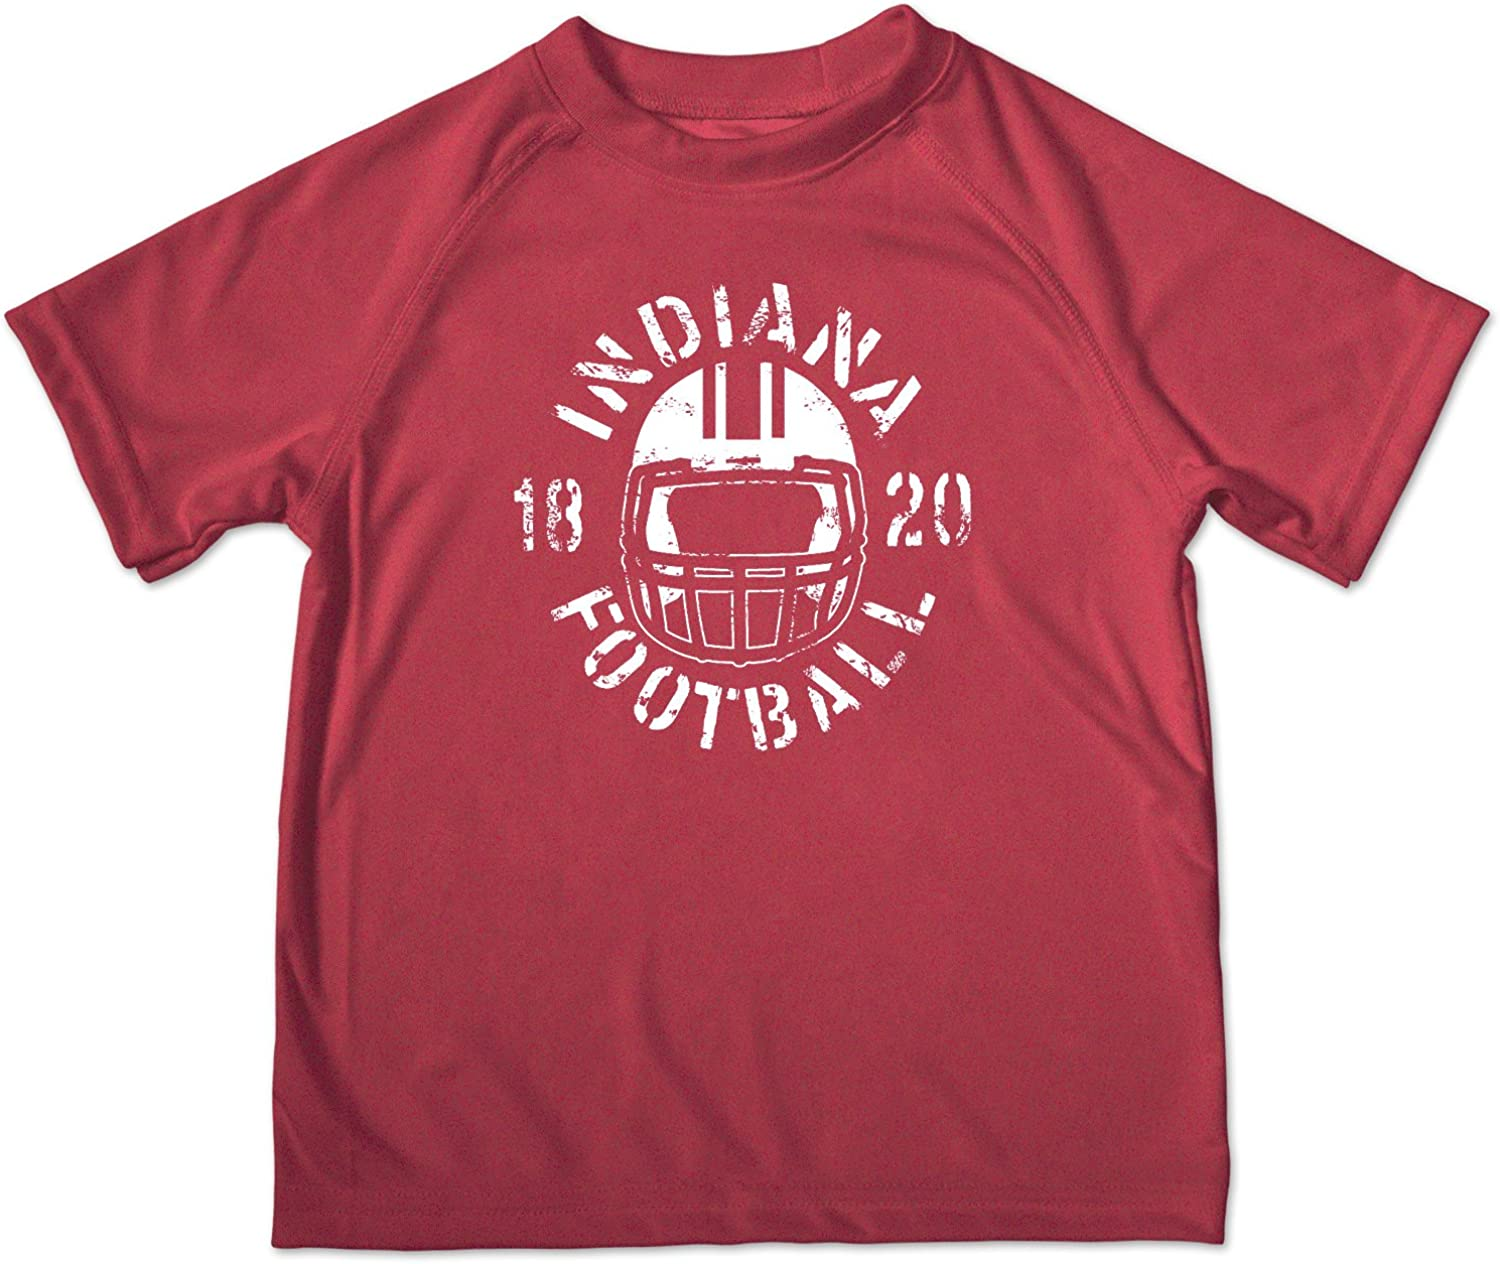 College Kids NCAA Youth Short Sleeve Breathable Impact Tee